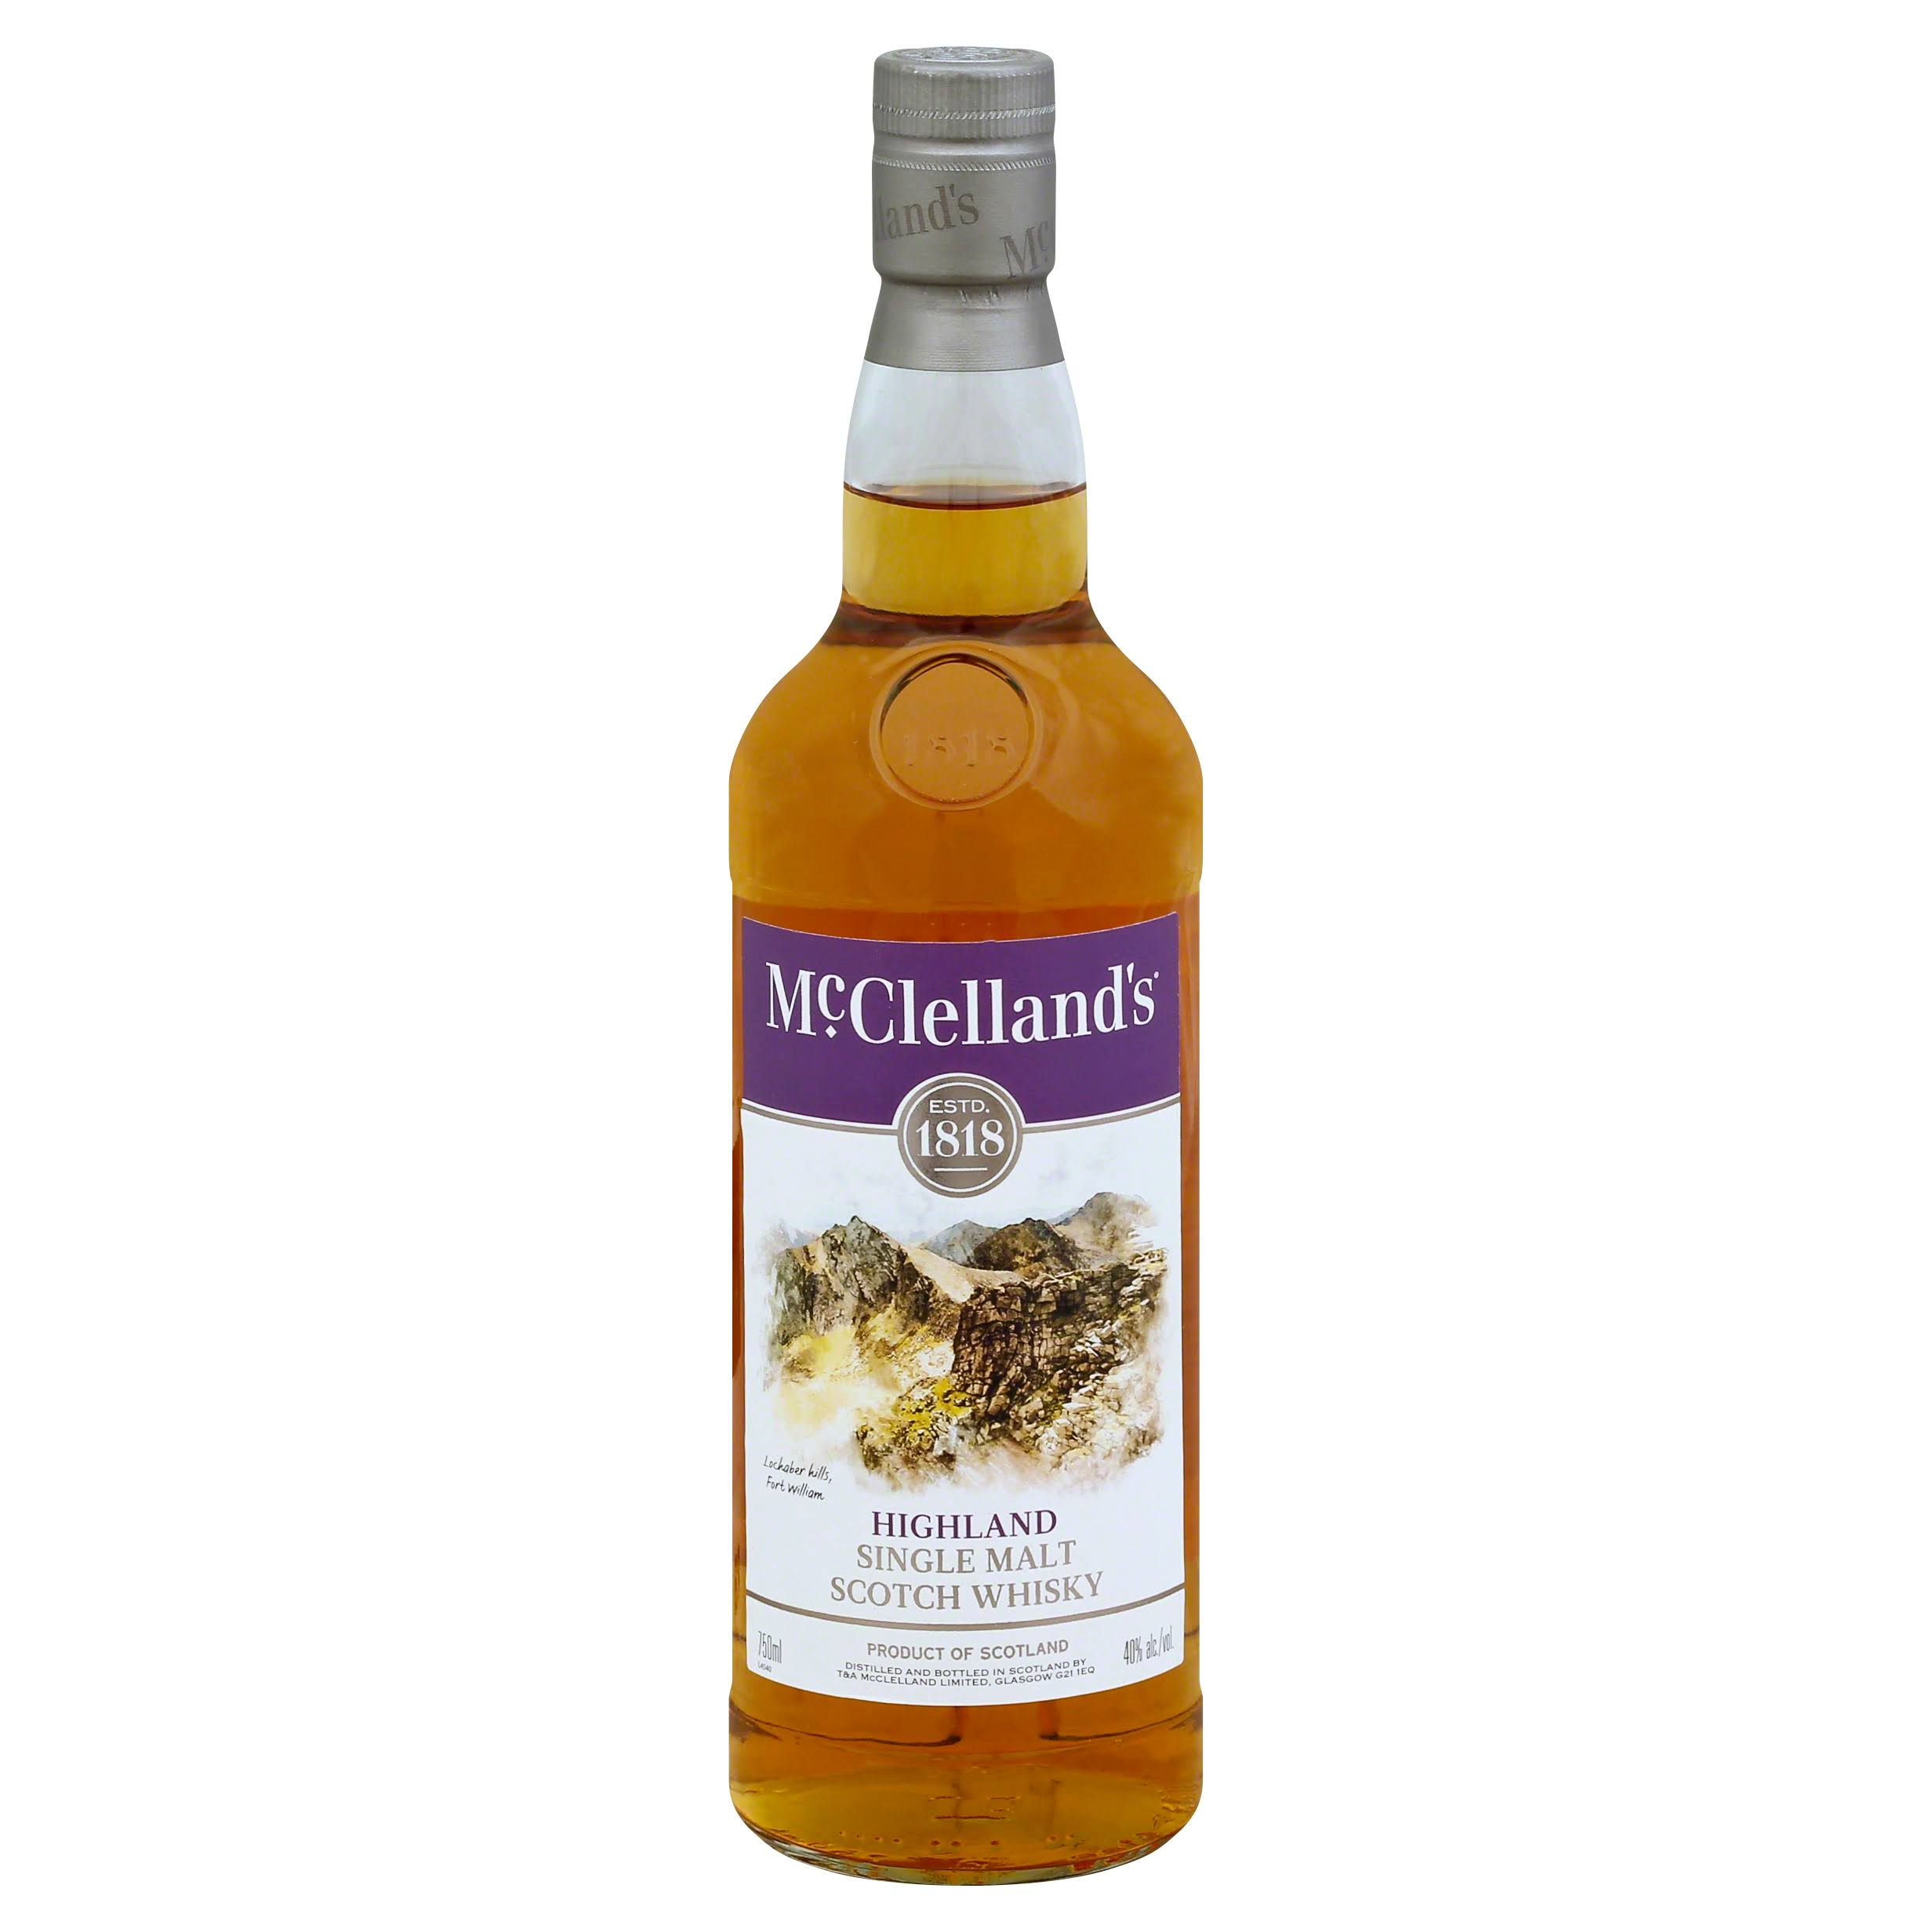 Mc Clellands Highland Single Malt Scotch Whisky - 750ml